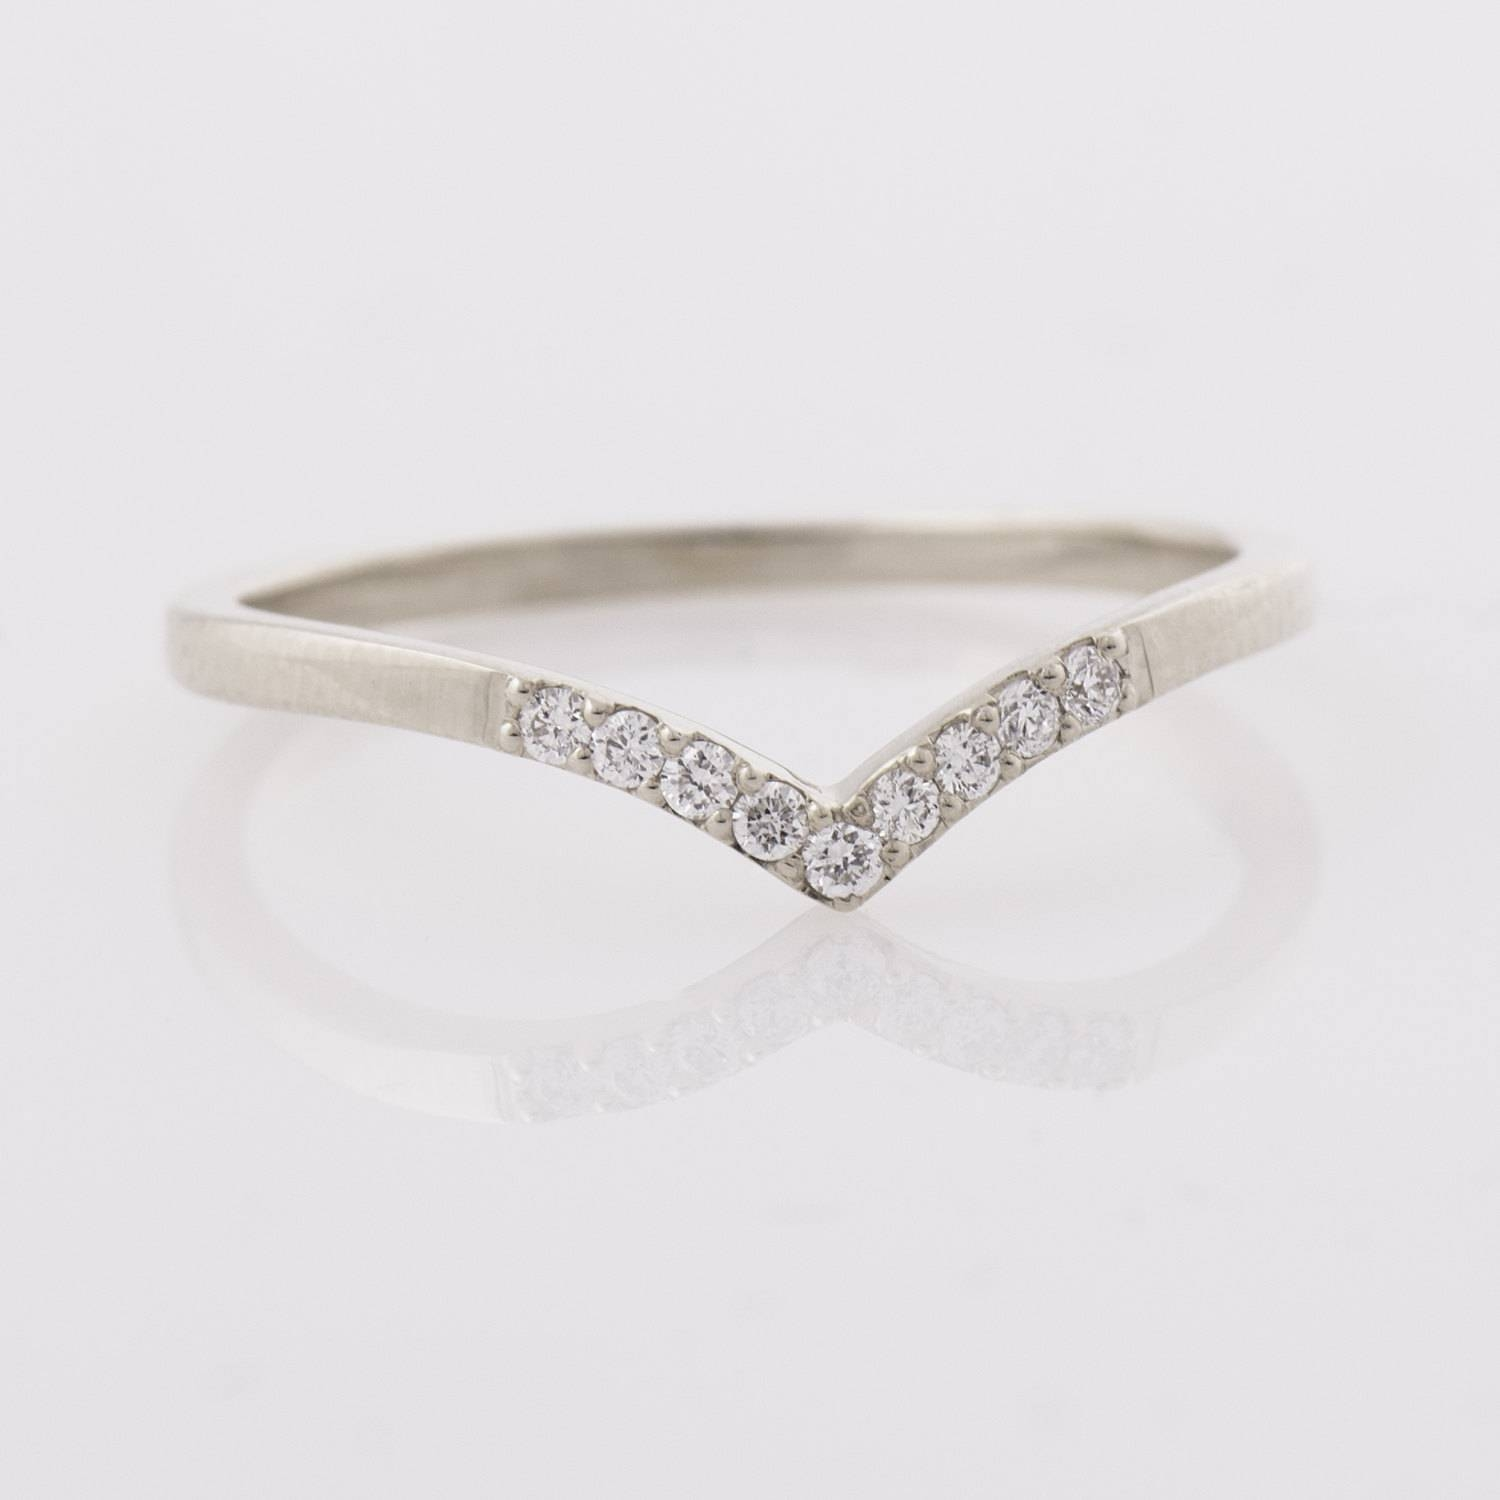 Chevron Ring 14K White Gold Diamonds Ring V Shaped Ring With Regard To Skinny Diamond Wedding Bands (View 3 of 15)